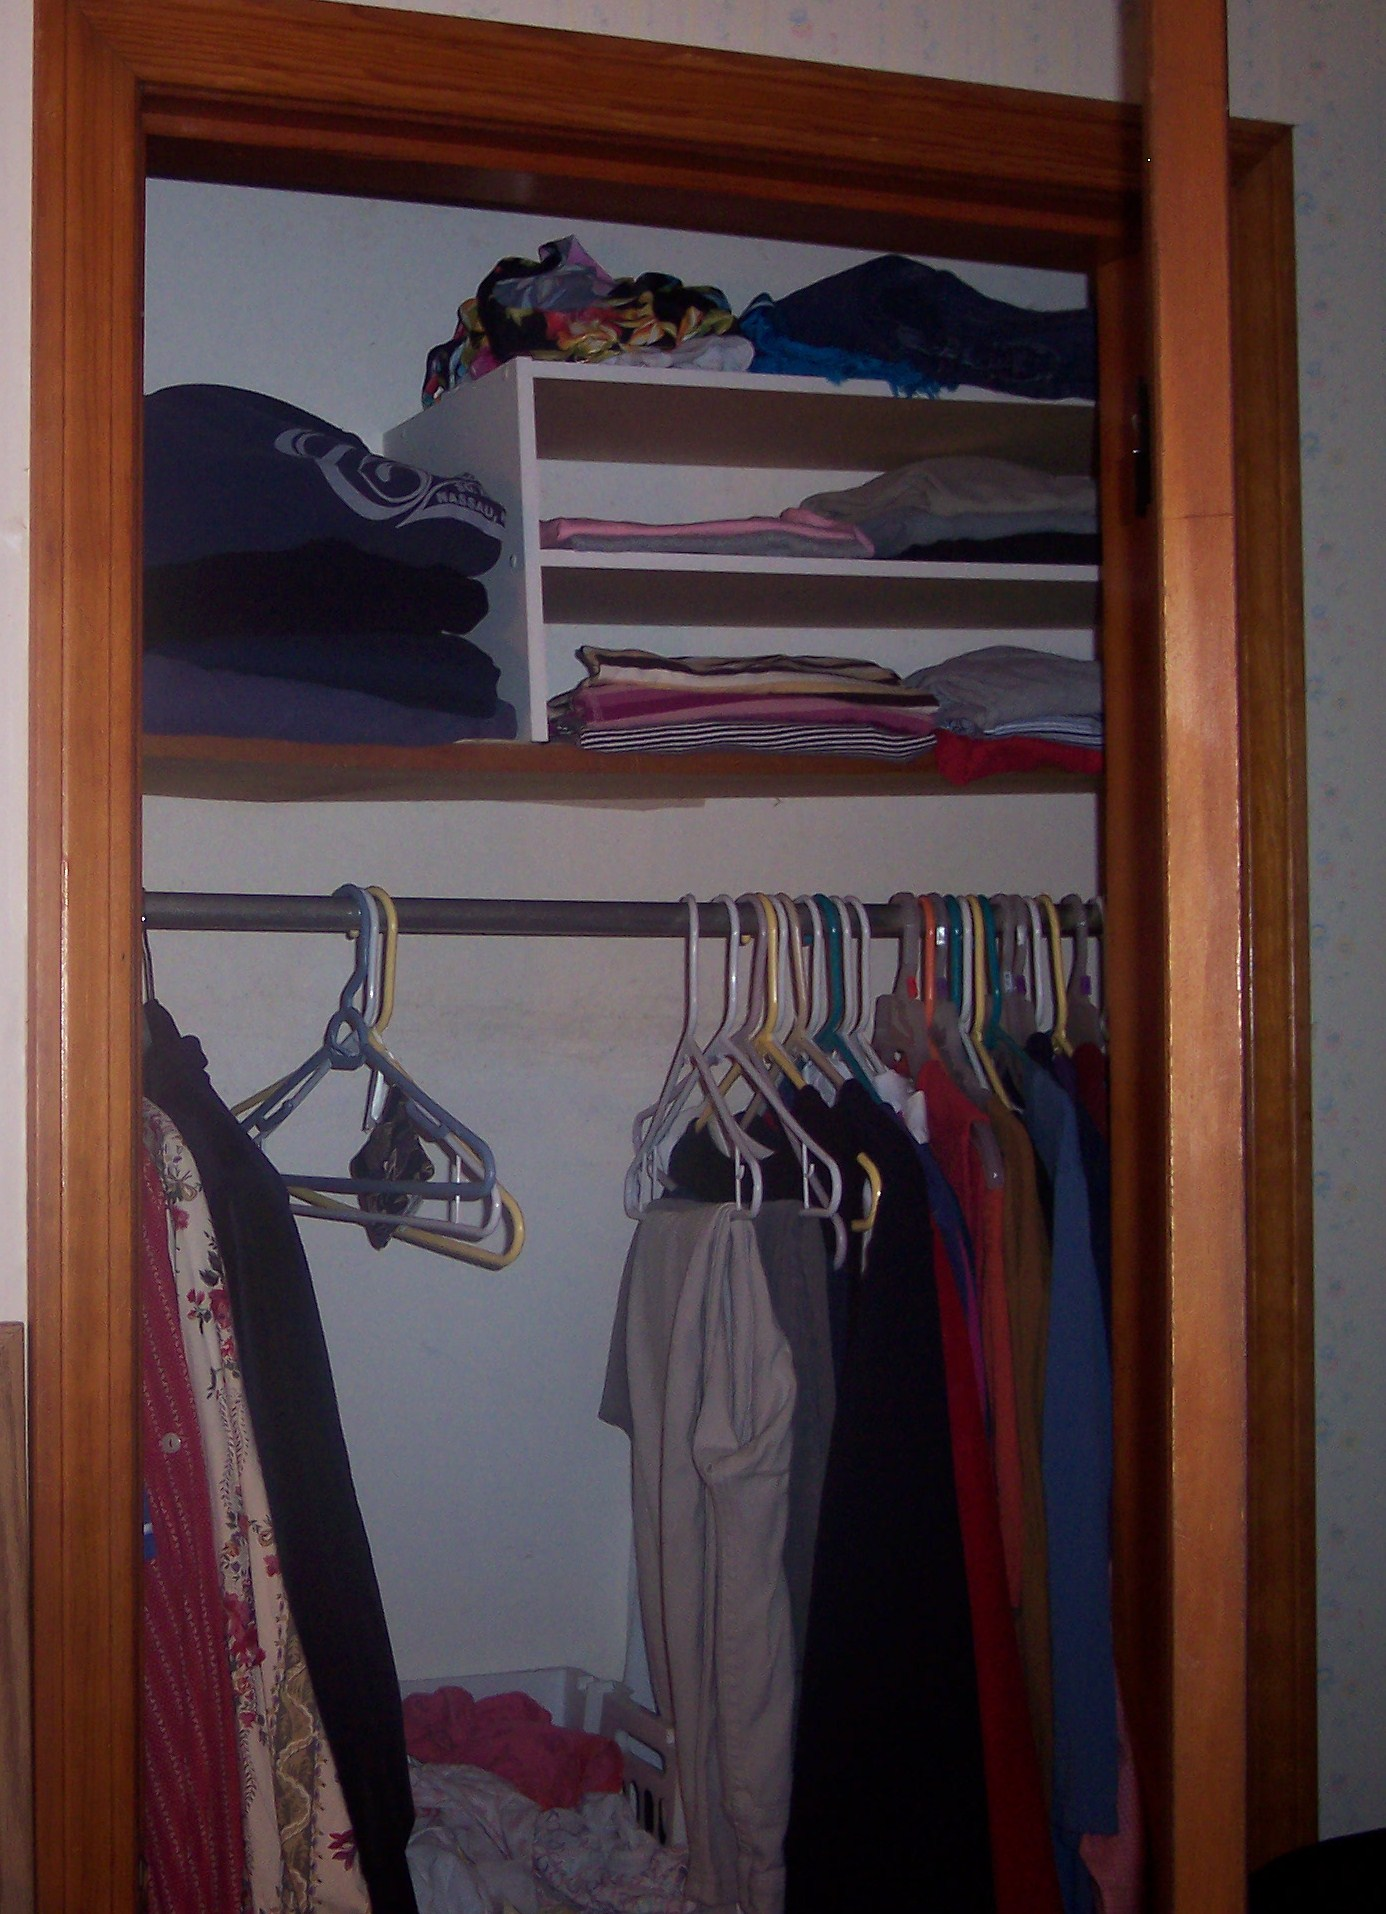 Open Closet Door Shelves Hanging Folded Hq Photo